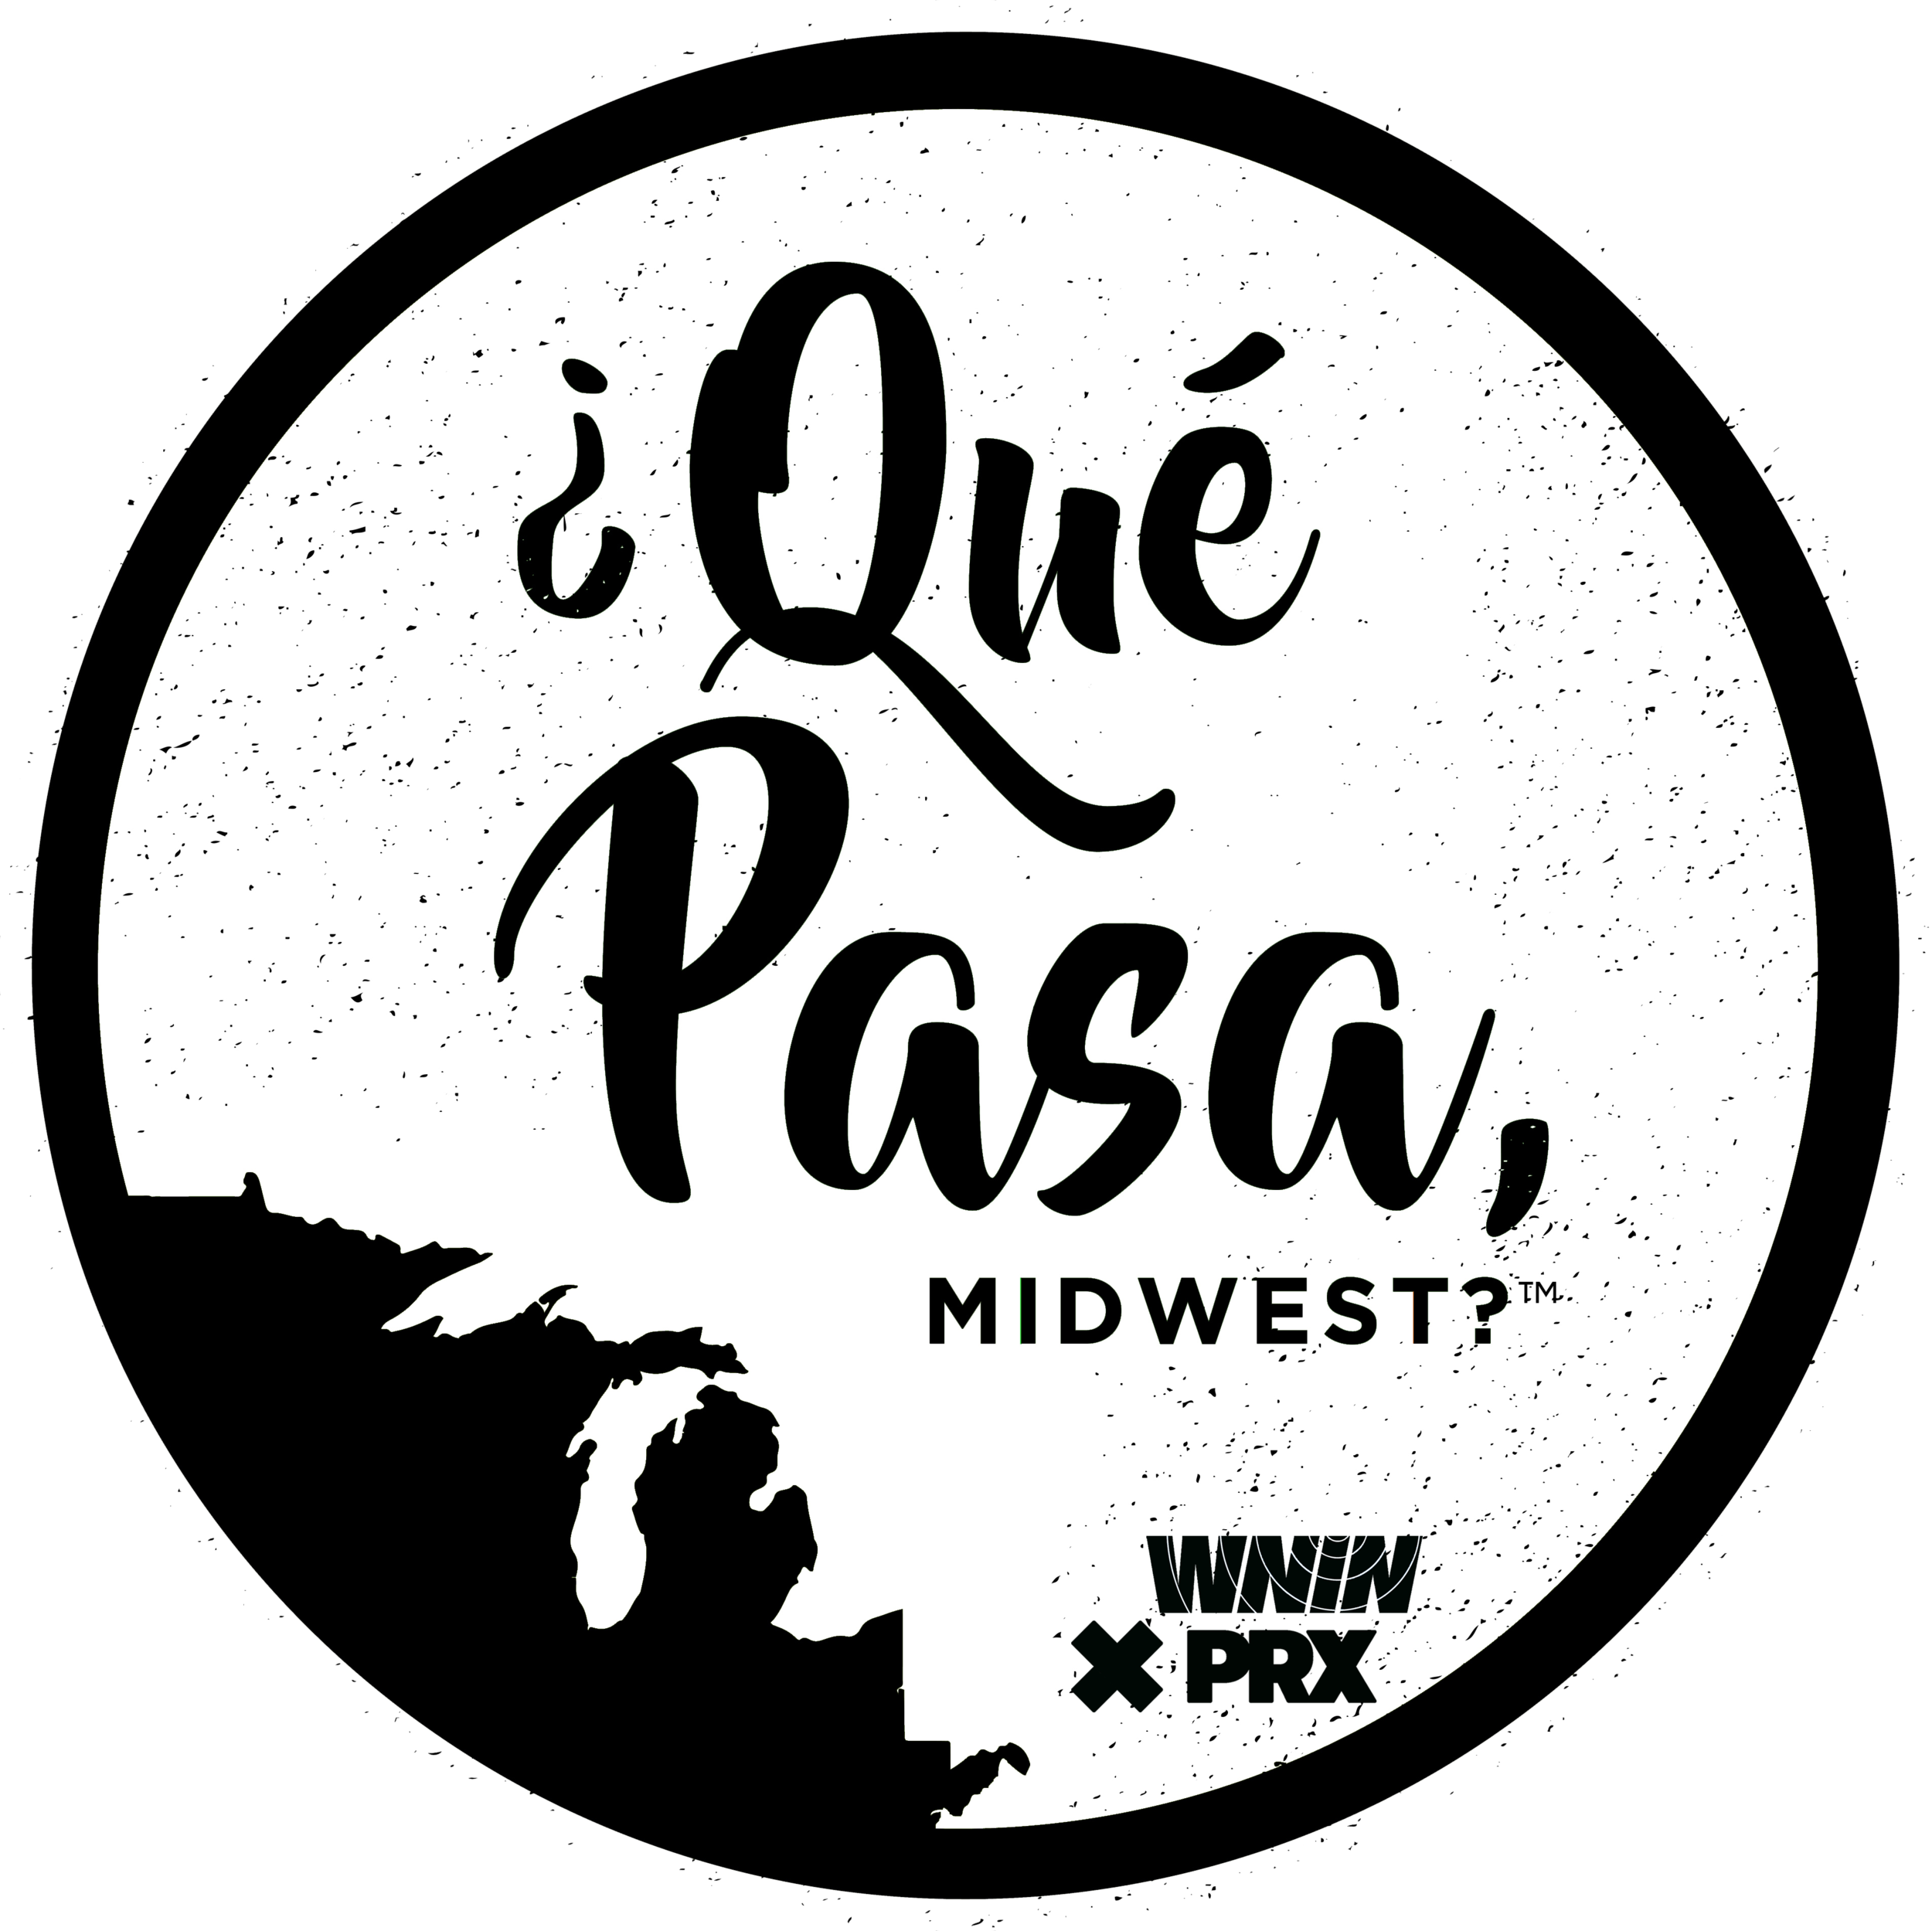 que_pasa_midwest.png